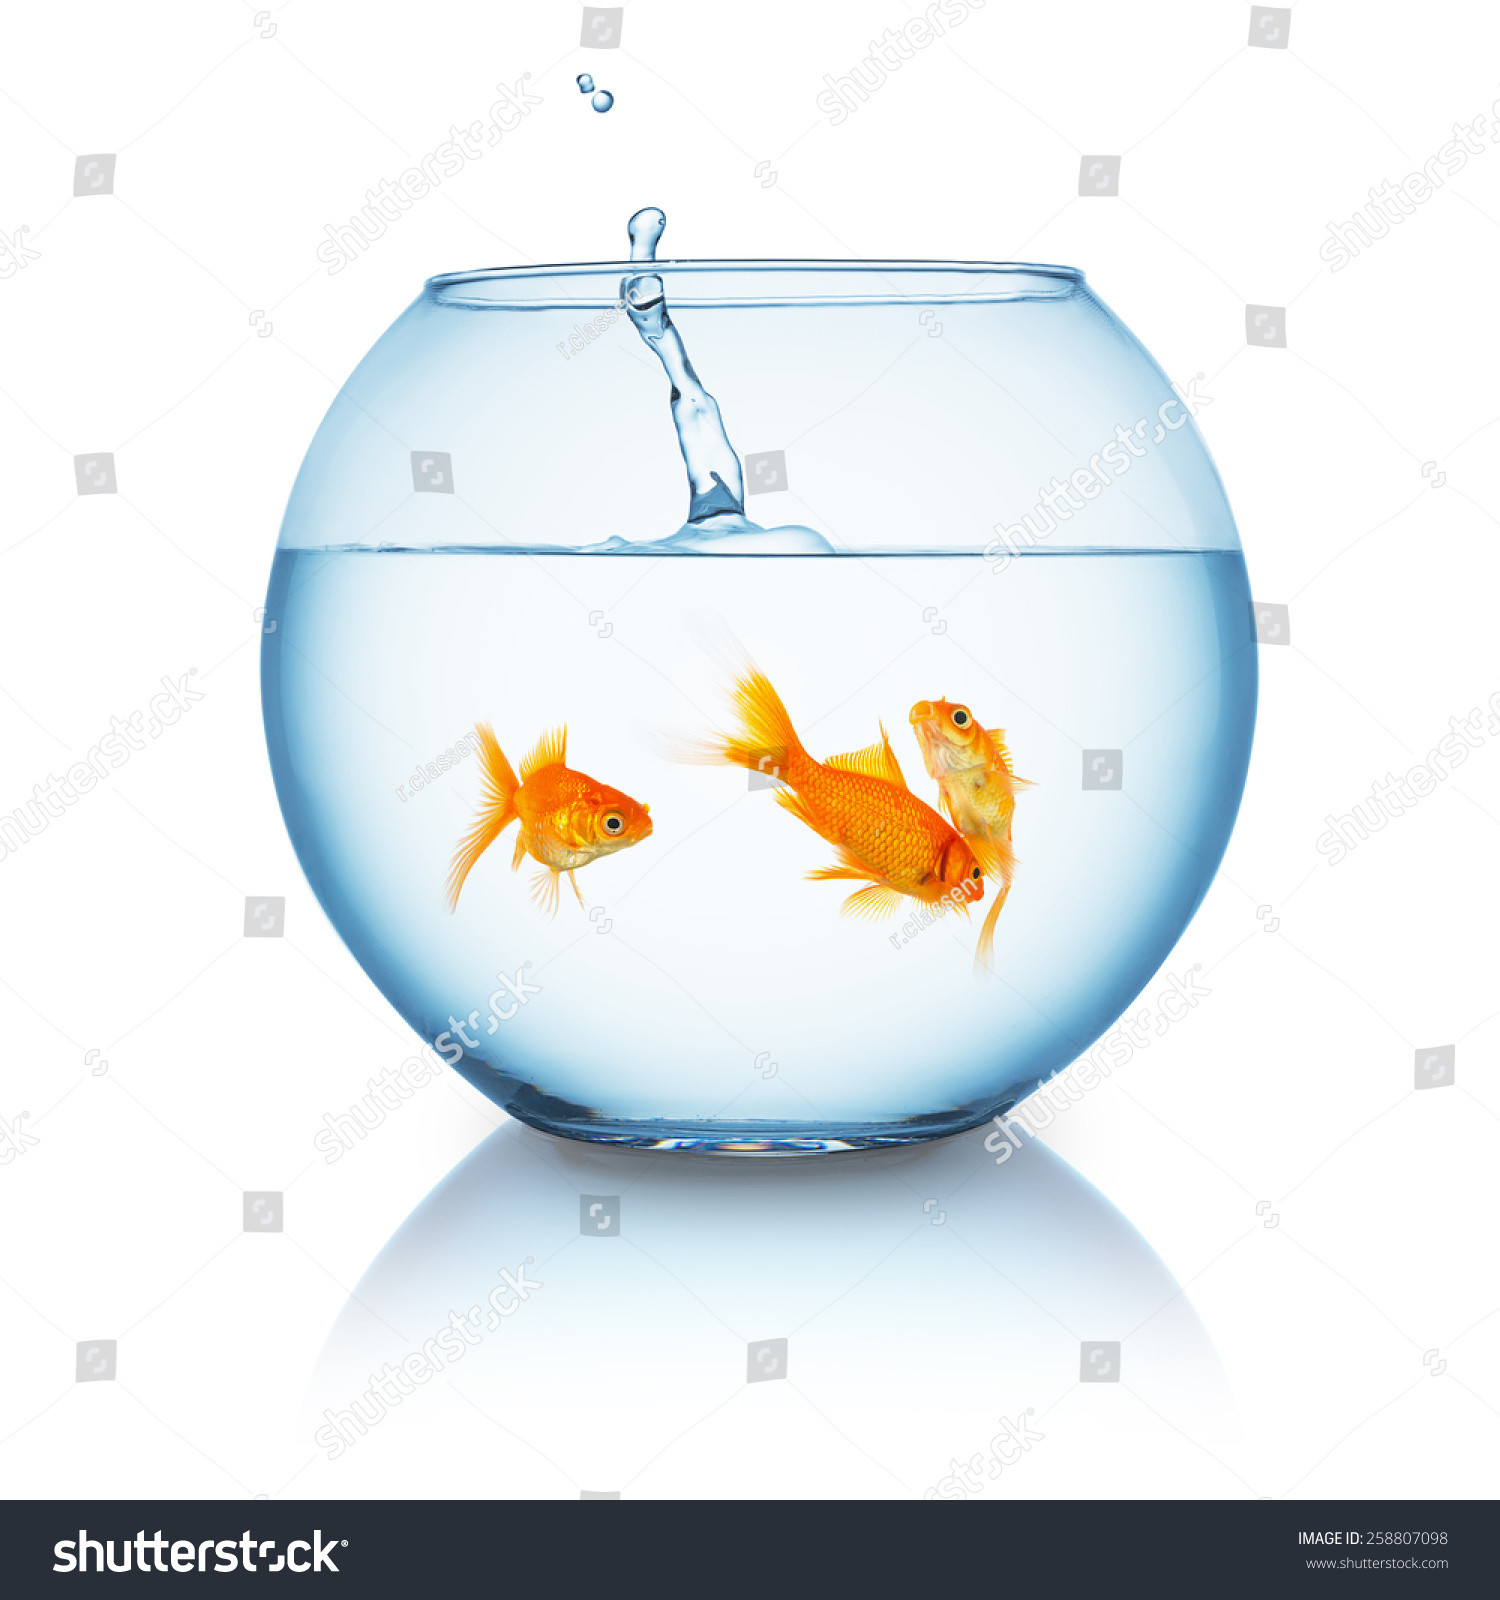 bubble fish bowl vase of tow goldfishes in a fishbowl isolated on white ez canvas throughout stock photo fishbowl with goldfishes and splash on white background 258807098